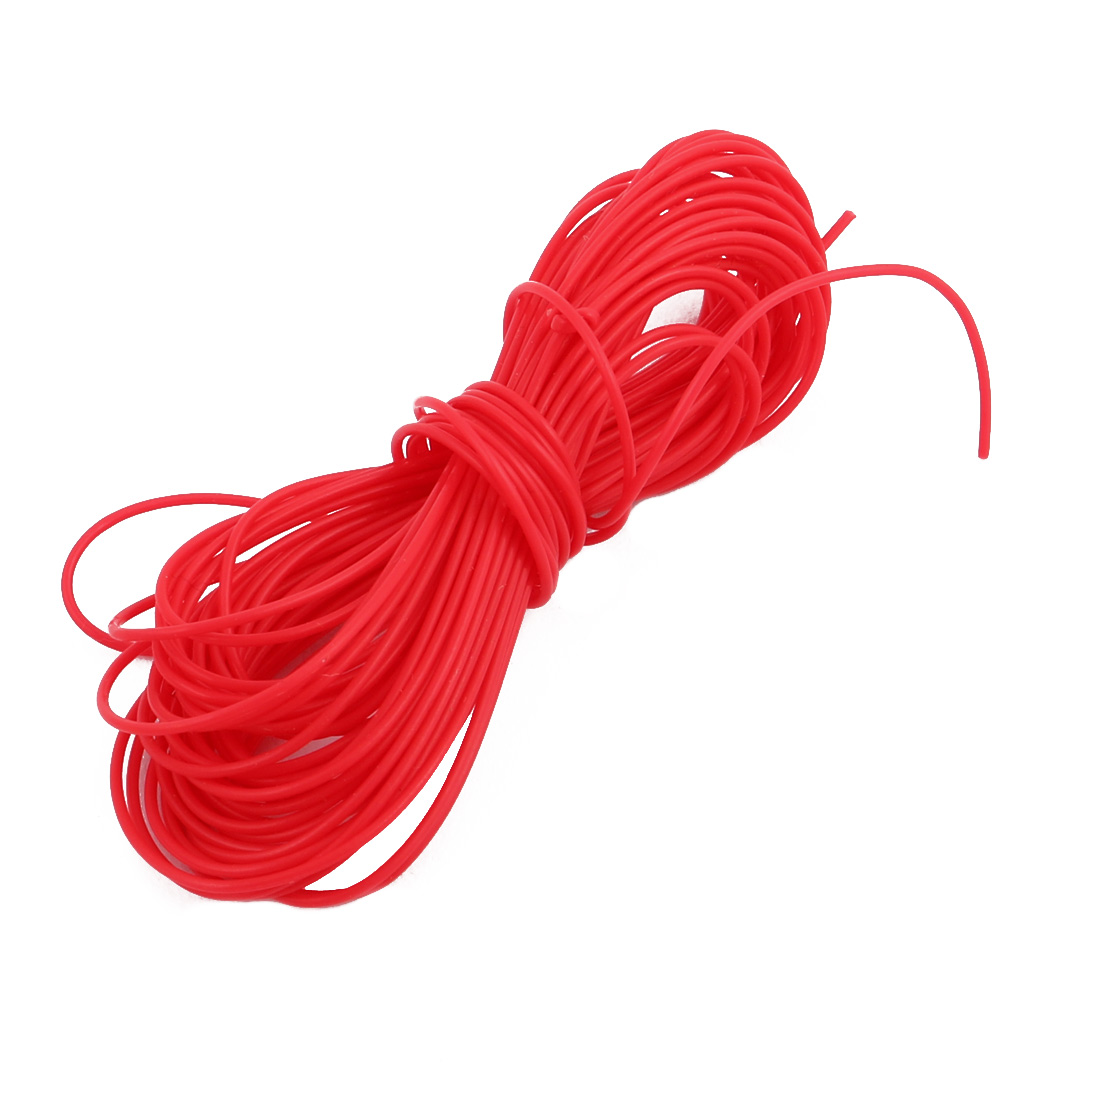 0.3mmx0.6mm PTFE Resistant High Temperature Red Tubing 5 Meters 16.4Ft